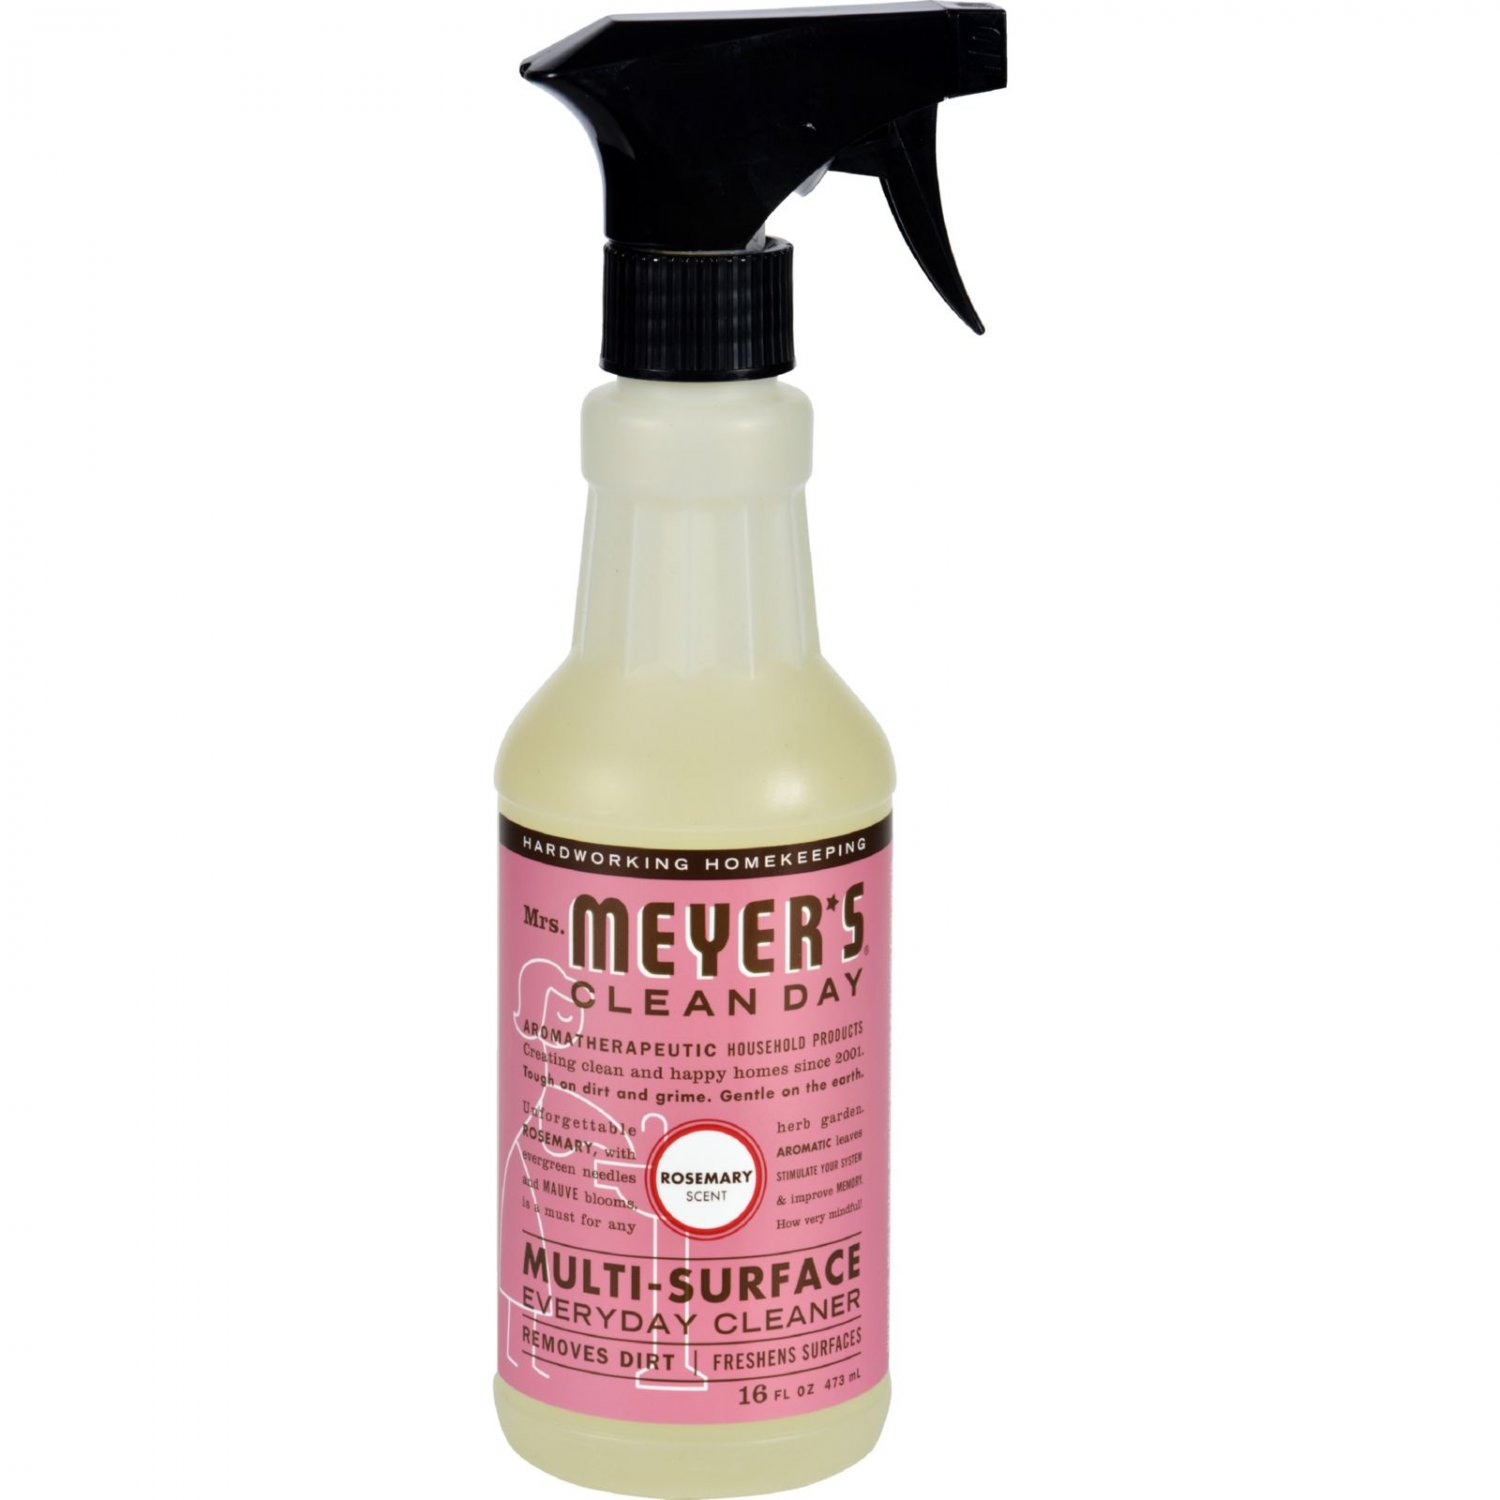 Mrs. Meyer's Multi Surface Spray Cleaner - Rosemary - 16 fl oz - Case of 6